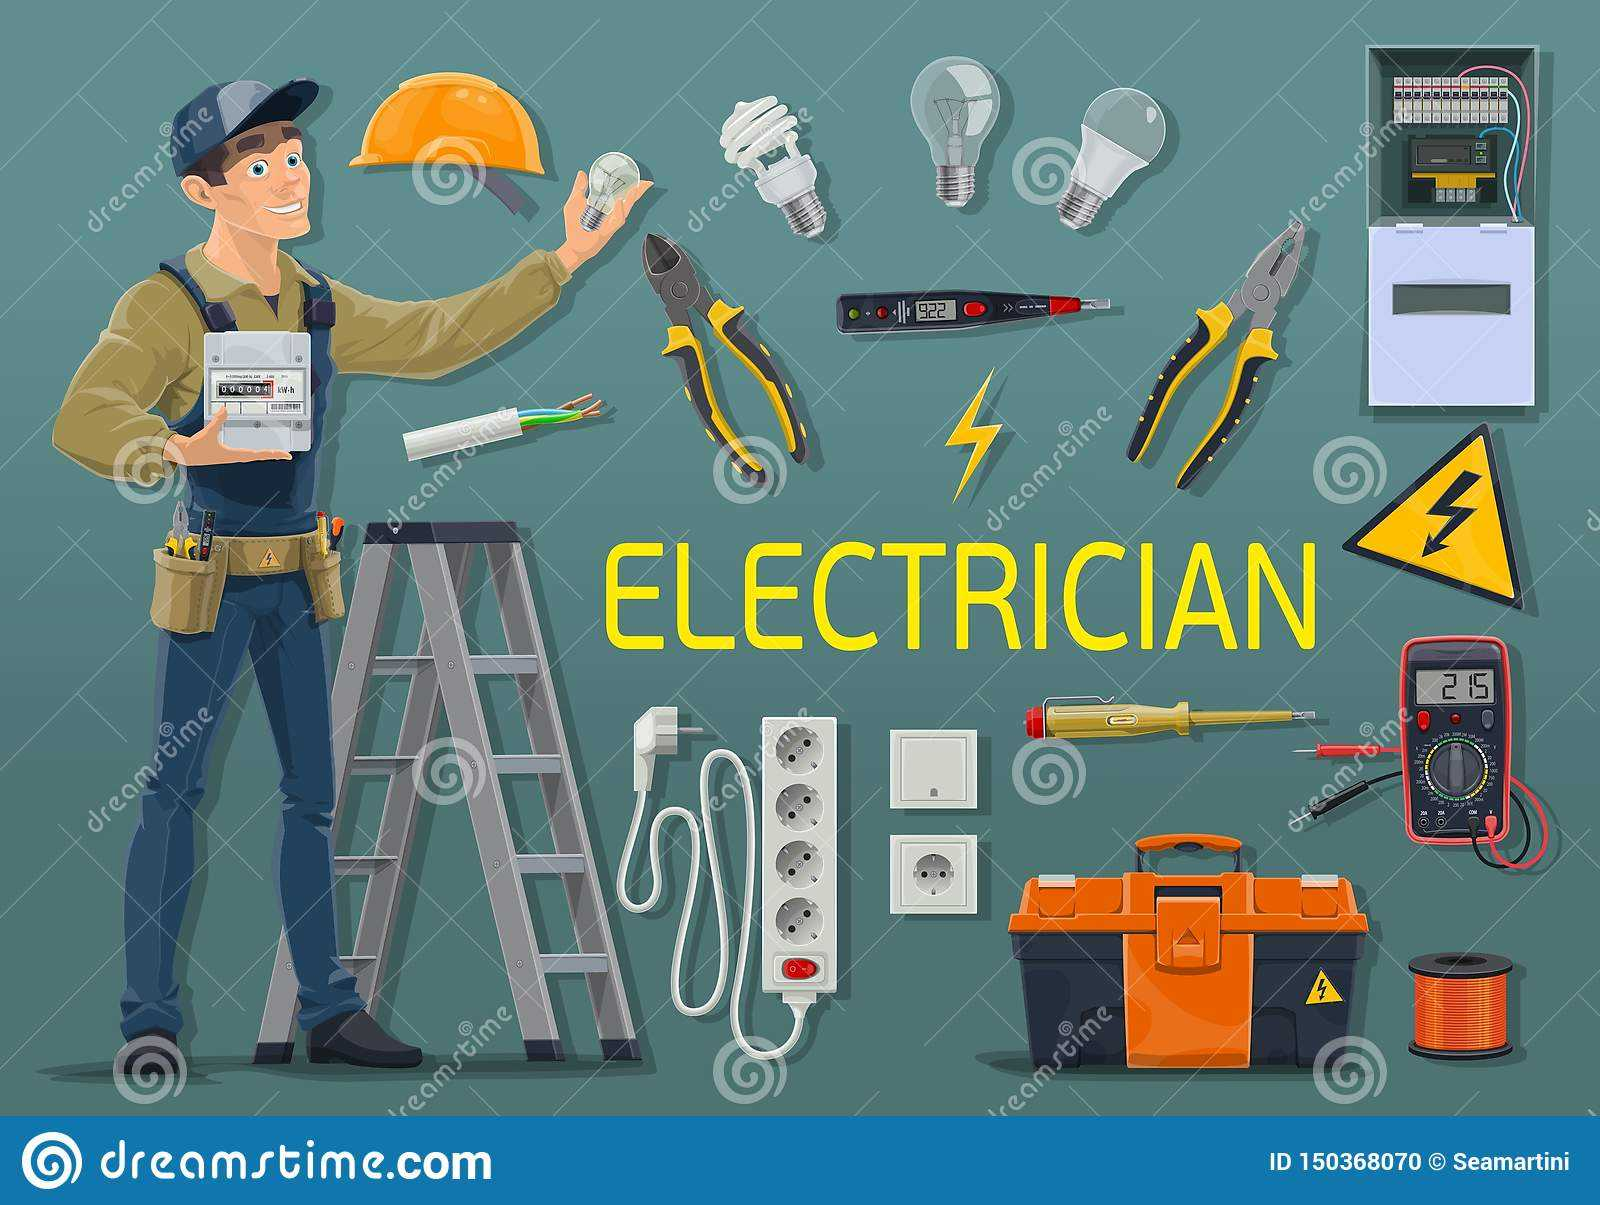 Electrical House work service